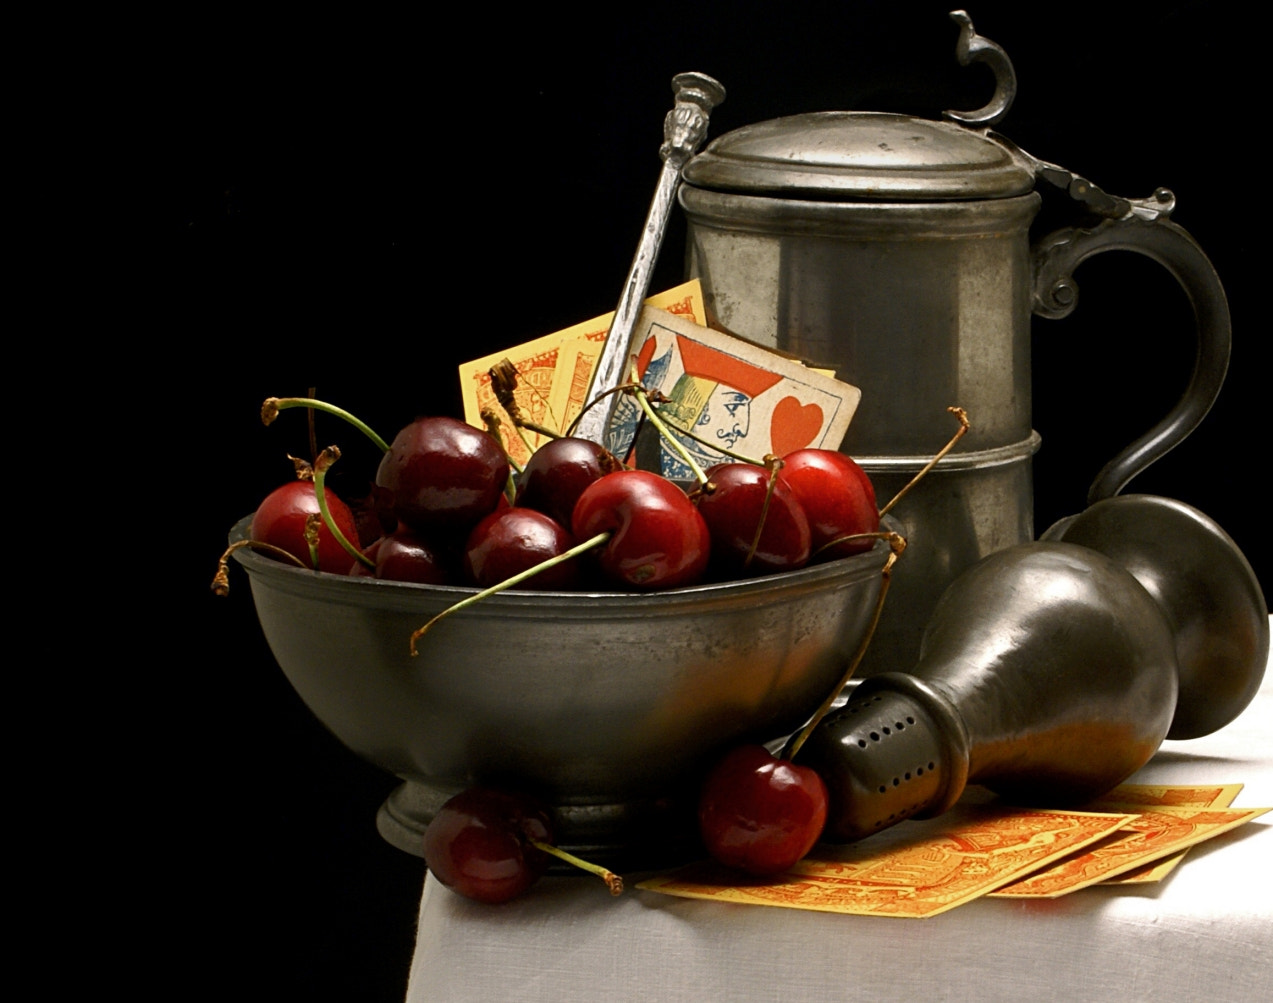 Photograph Cherries and Pewter by Jack Hardin on 500px